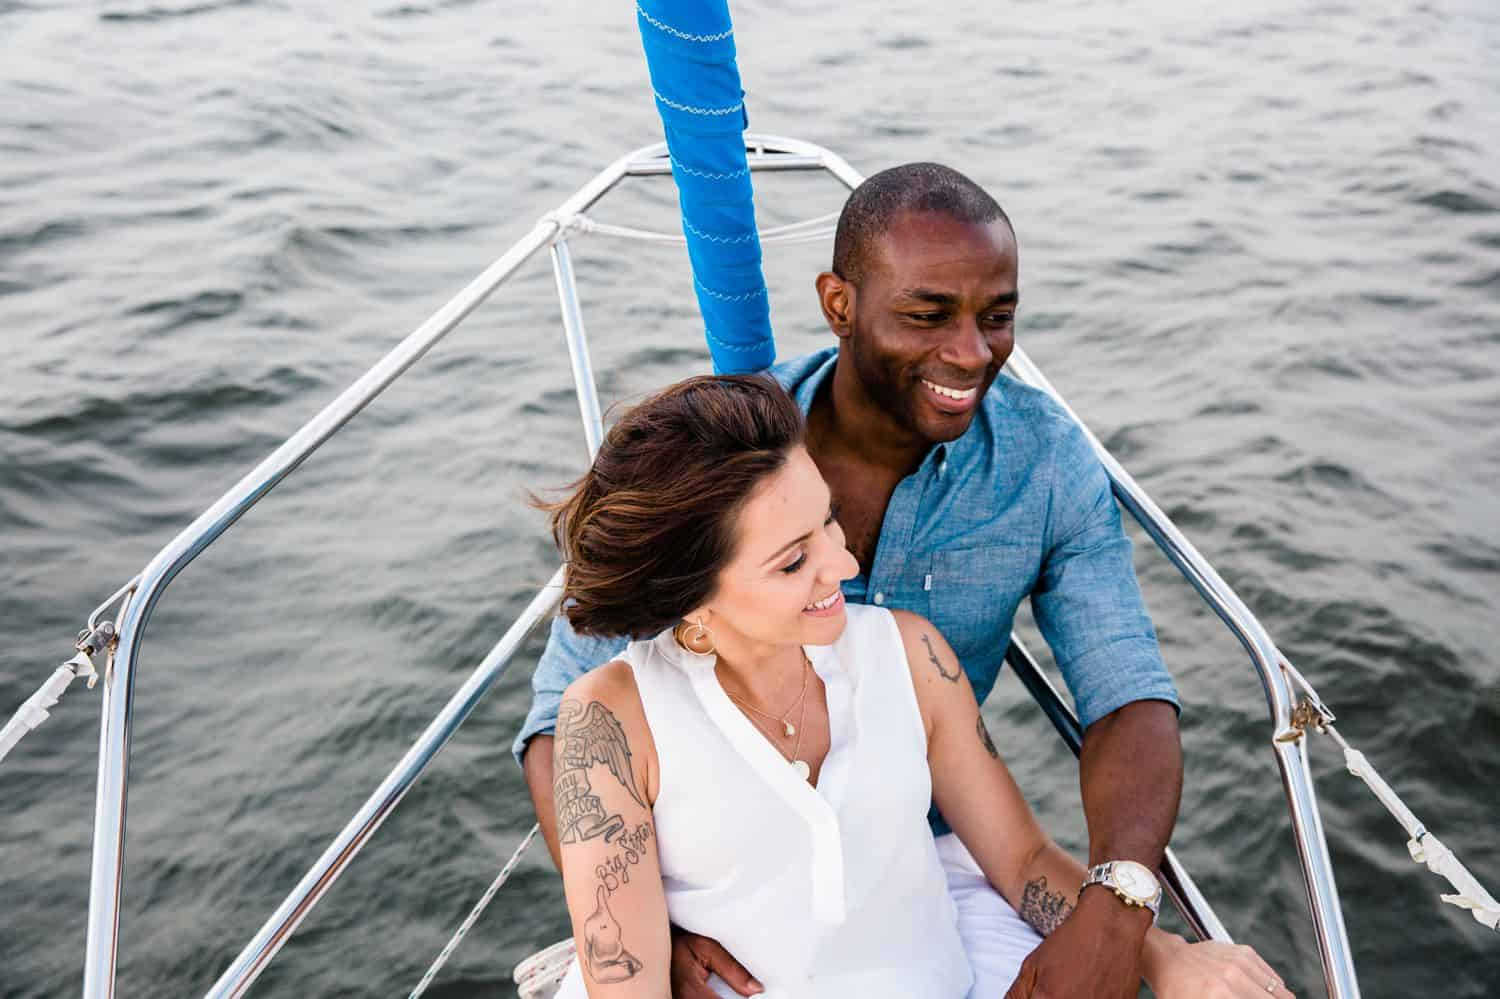 A Black man sails on a sailboat with his wife